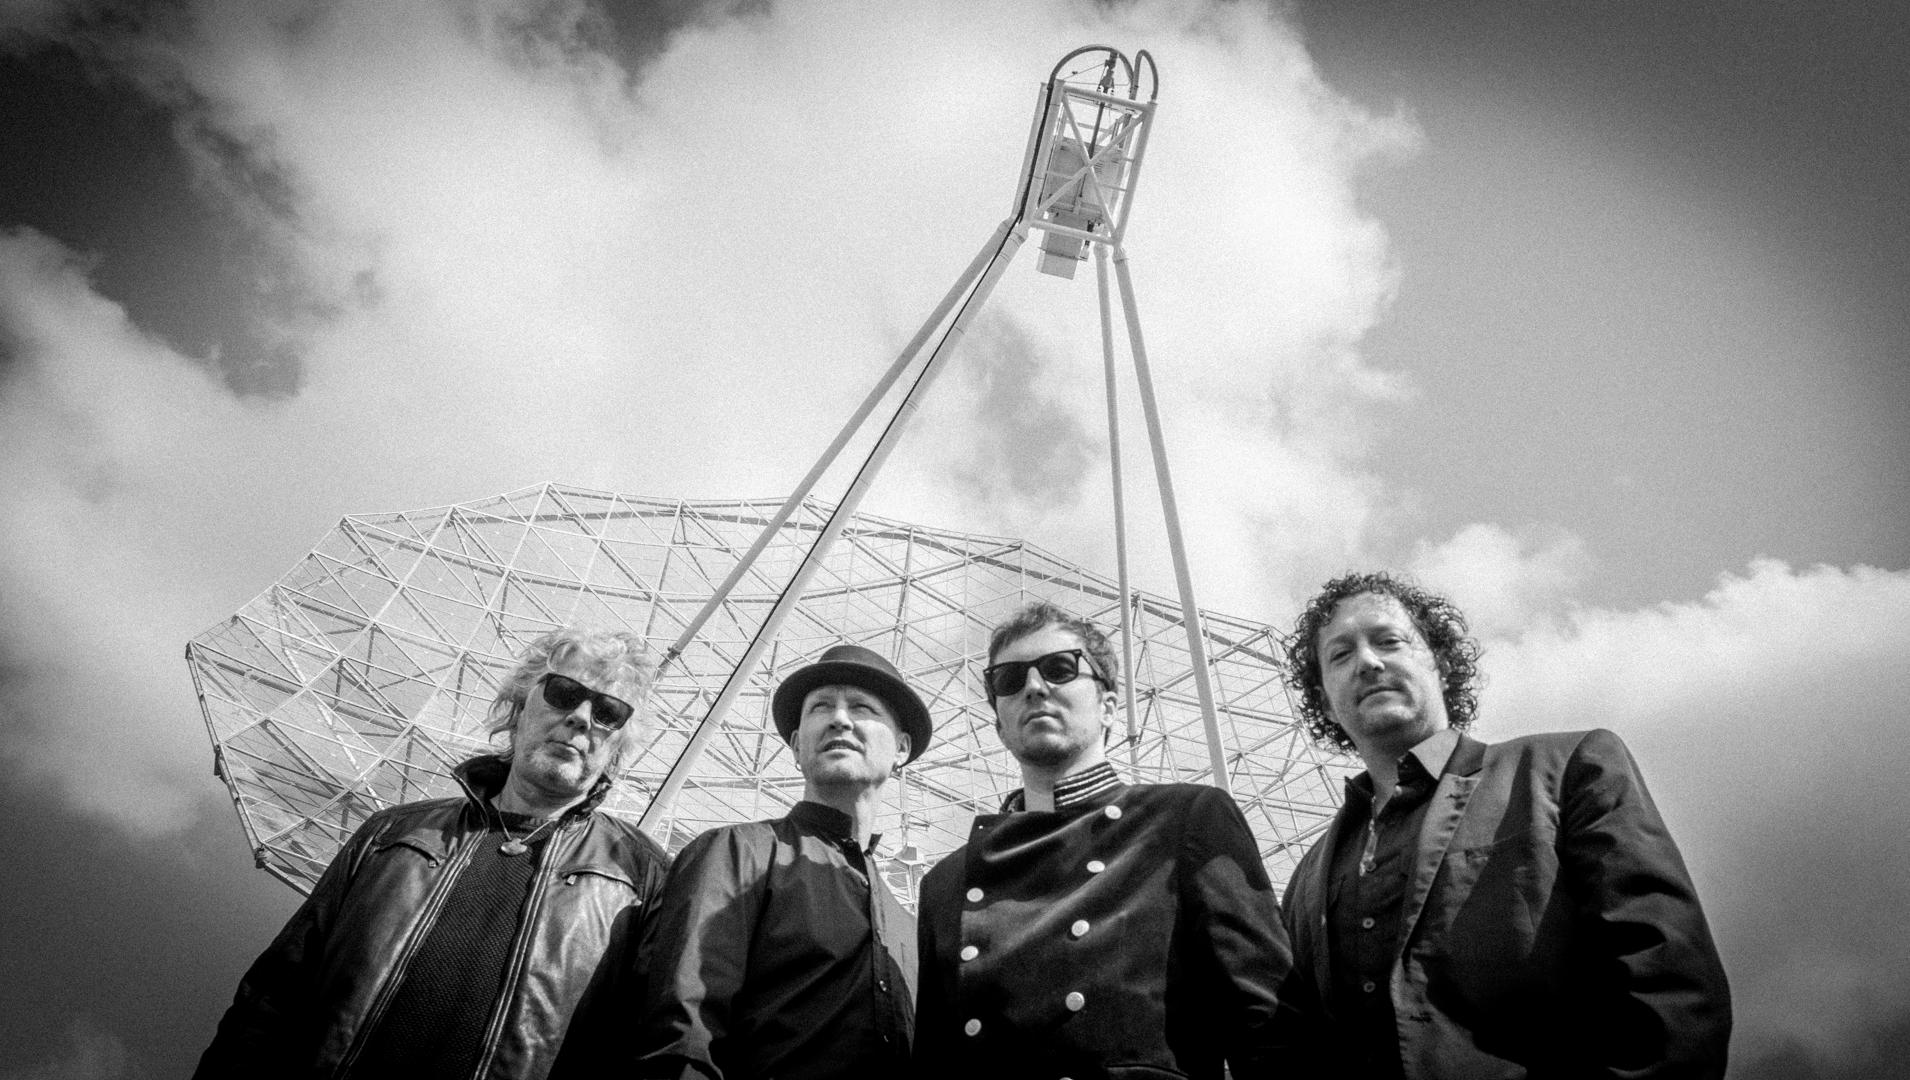 King of the World blues band